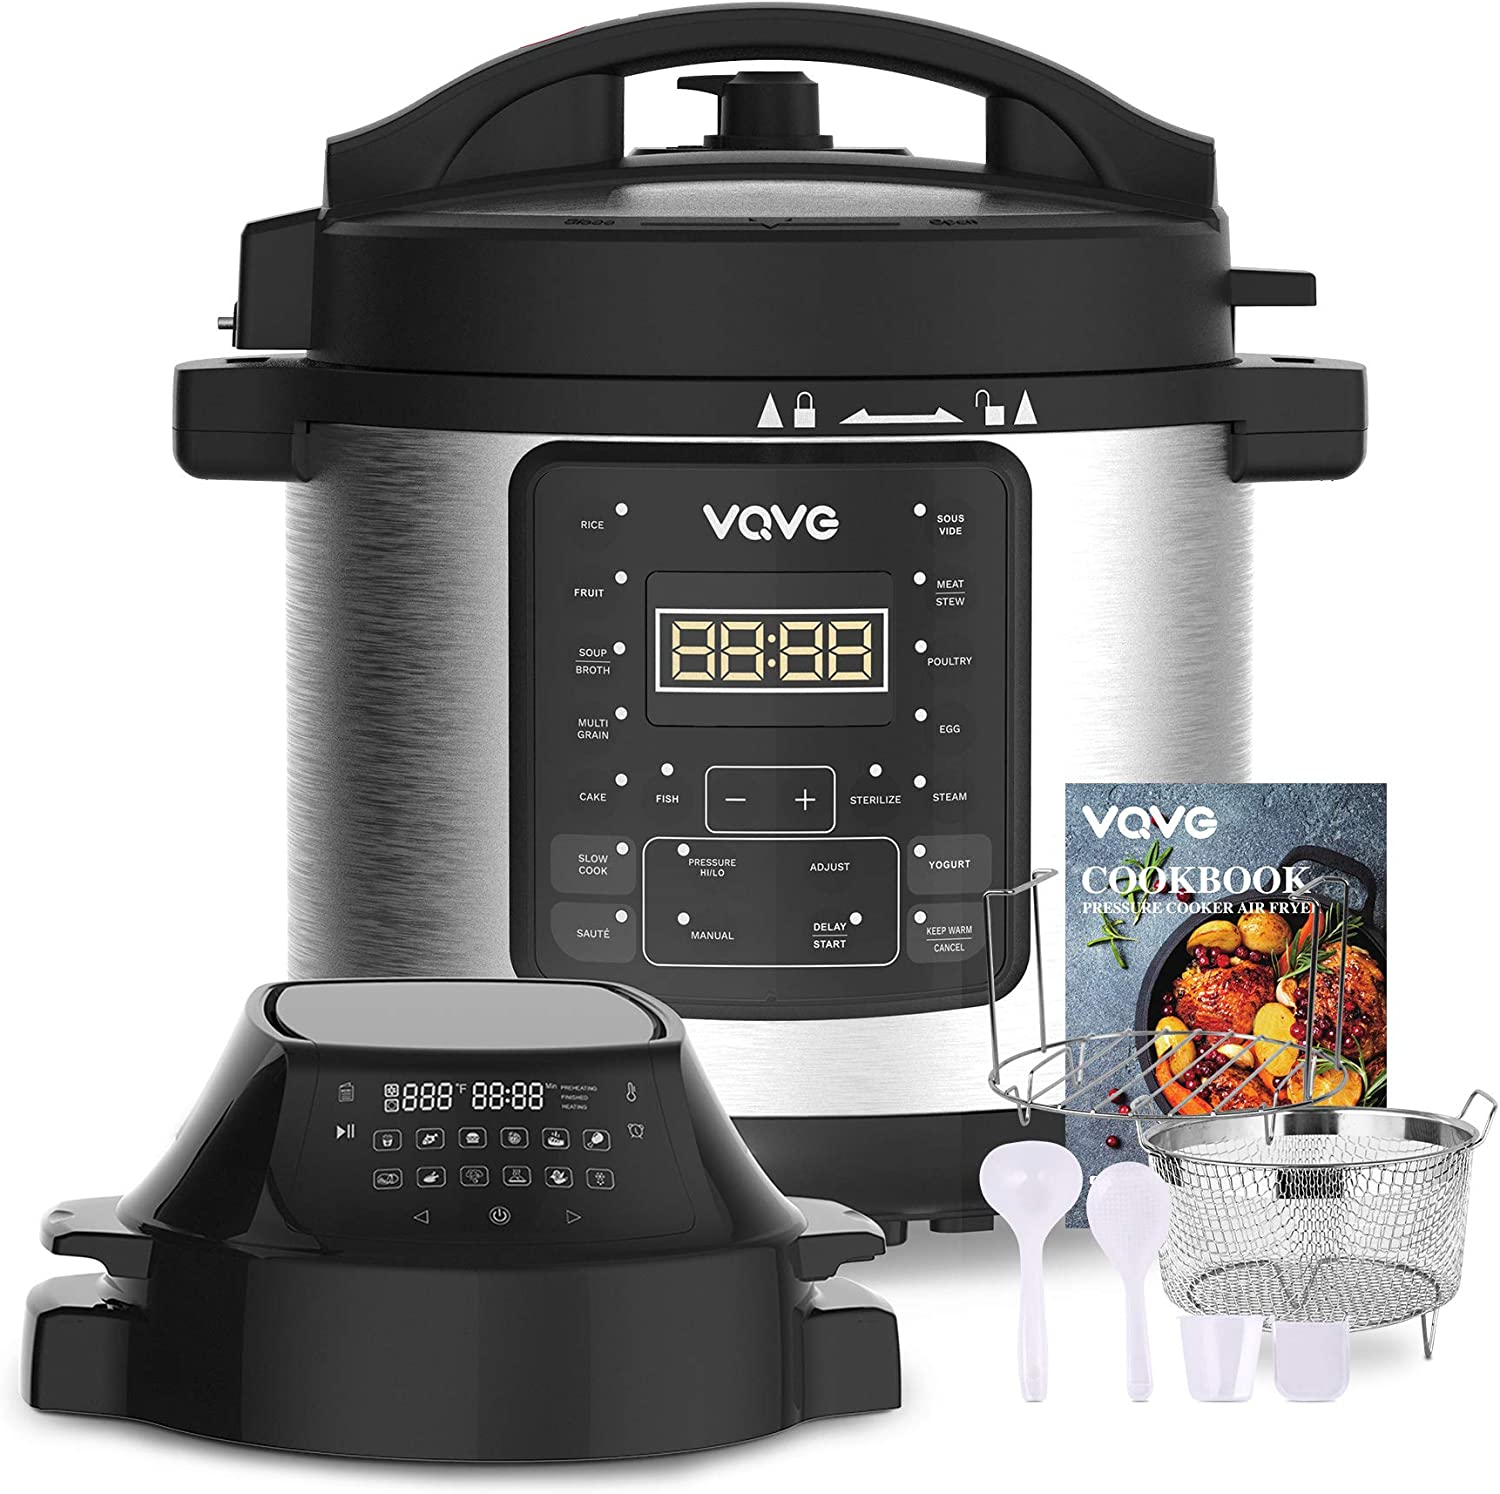 Pressure Cooker and Air Fryer, Steamer, Slow Cooker, Multi-Cooker, and More, VQVG Air Fryer Pressure Cooker Combo, Two Detachable Lids, Dual Control Panel, 6 QT for Home, Included Basket Rack Recipe Book